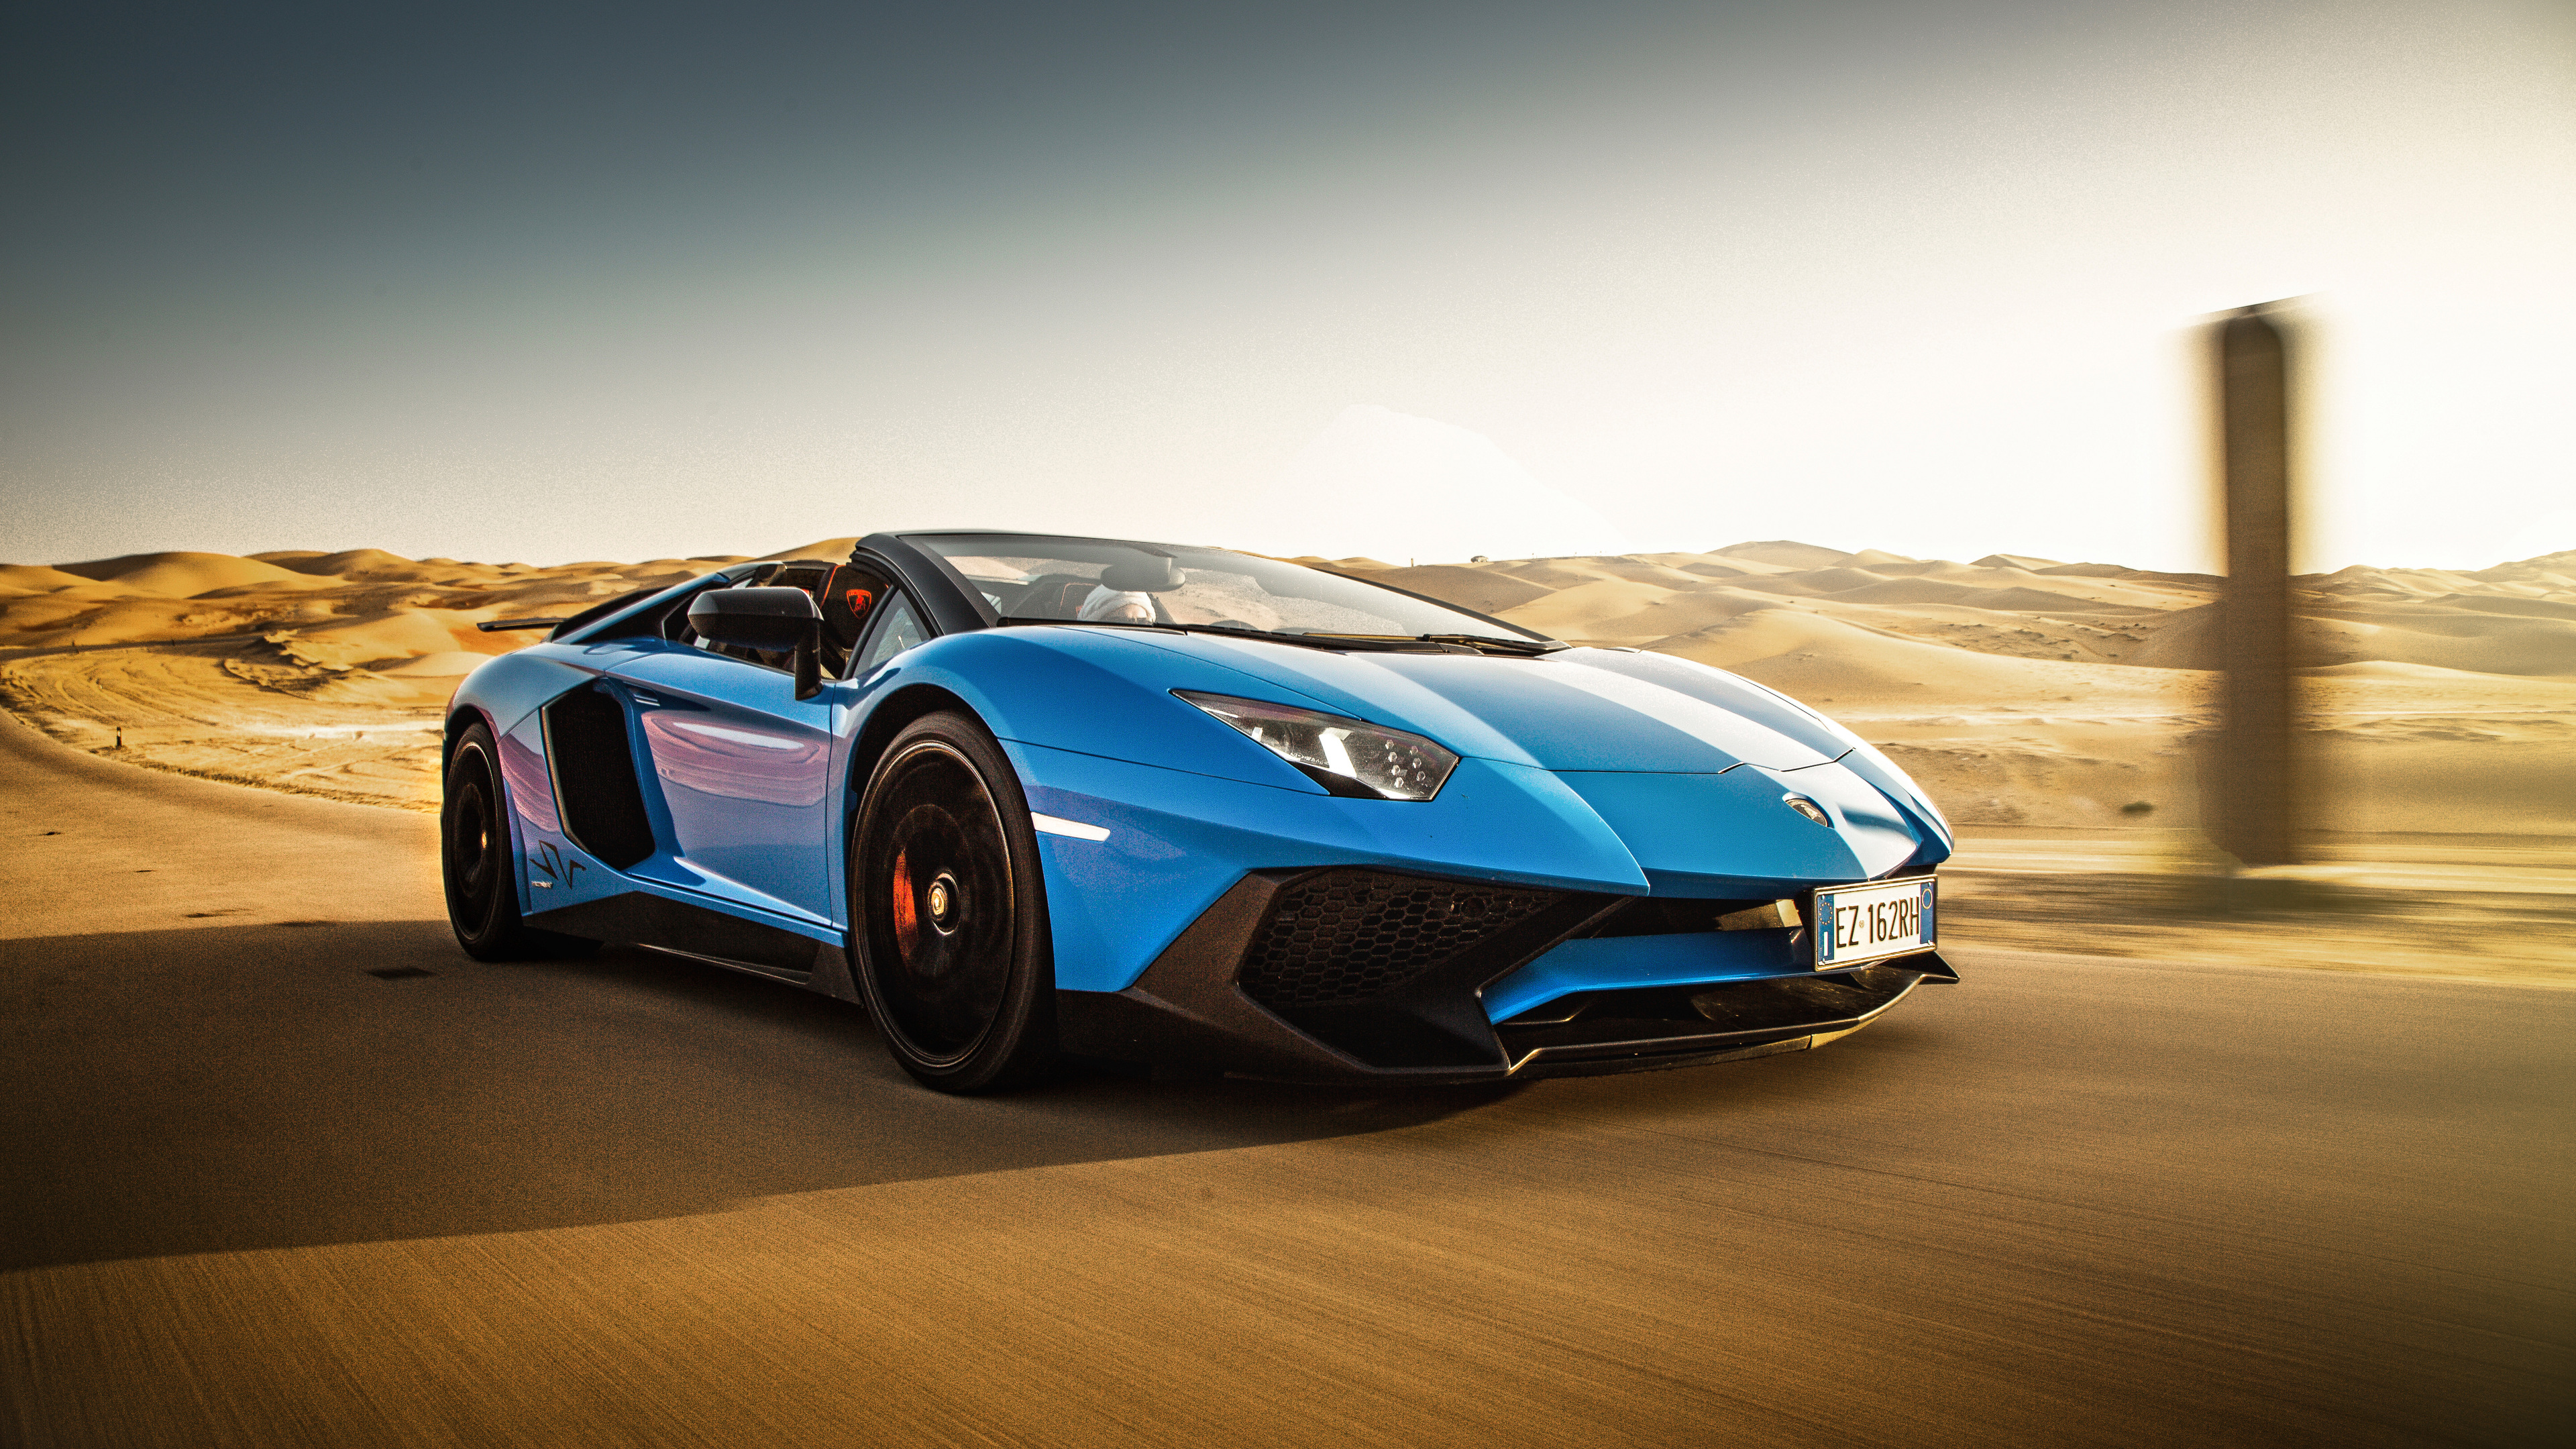 lamborghini aventador sv 5k 2018 1539792894 - Lamborghini Aventador SV 5k 2018 - lamborghini wallpapers, lamborghini aventador wallpapers, hd-wallpapers, cars wallpapers, 5k wallpapers, 4k-wallpapers